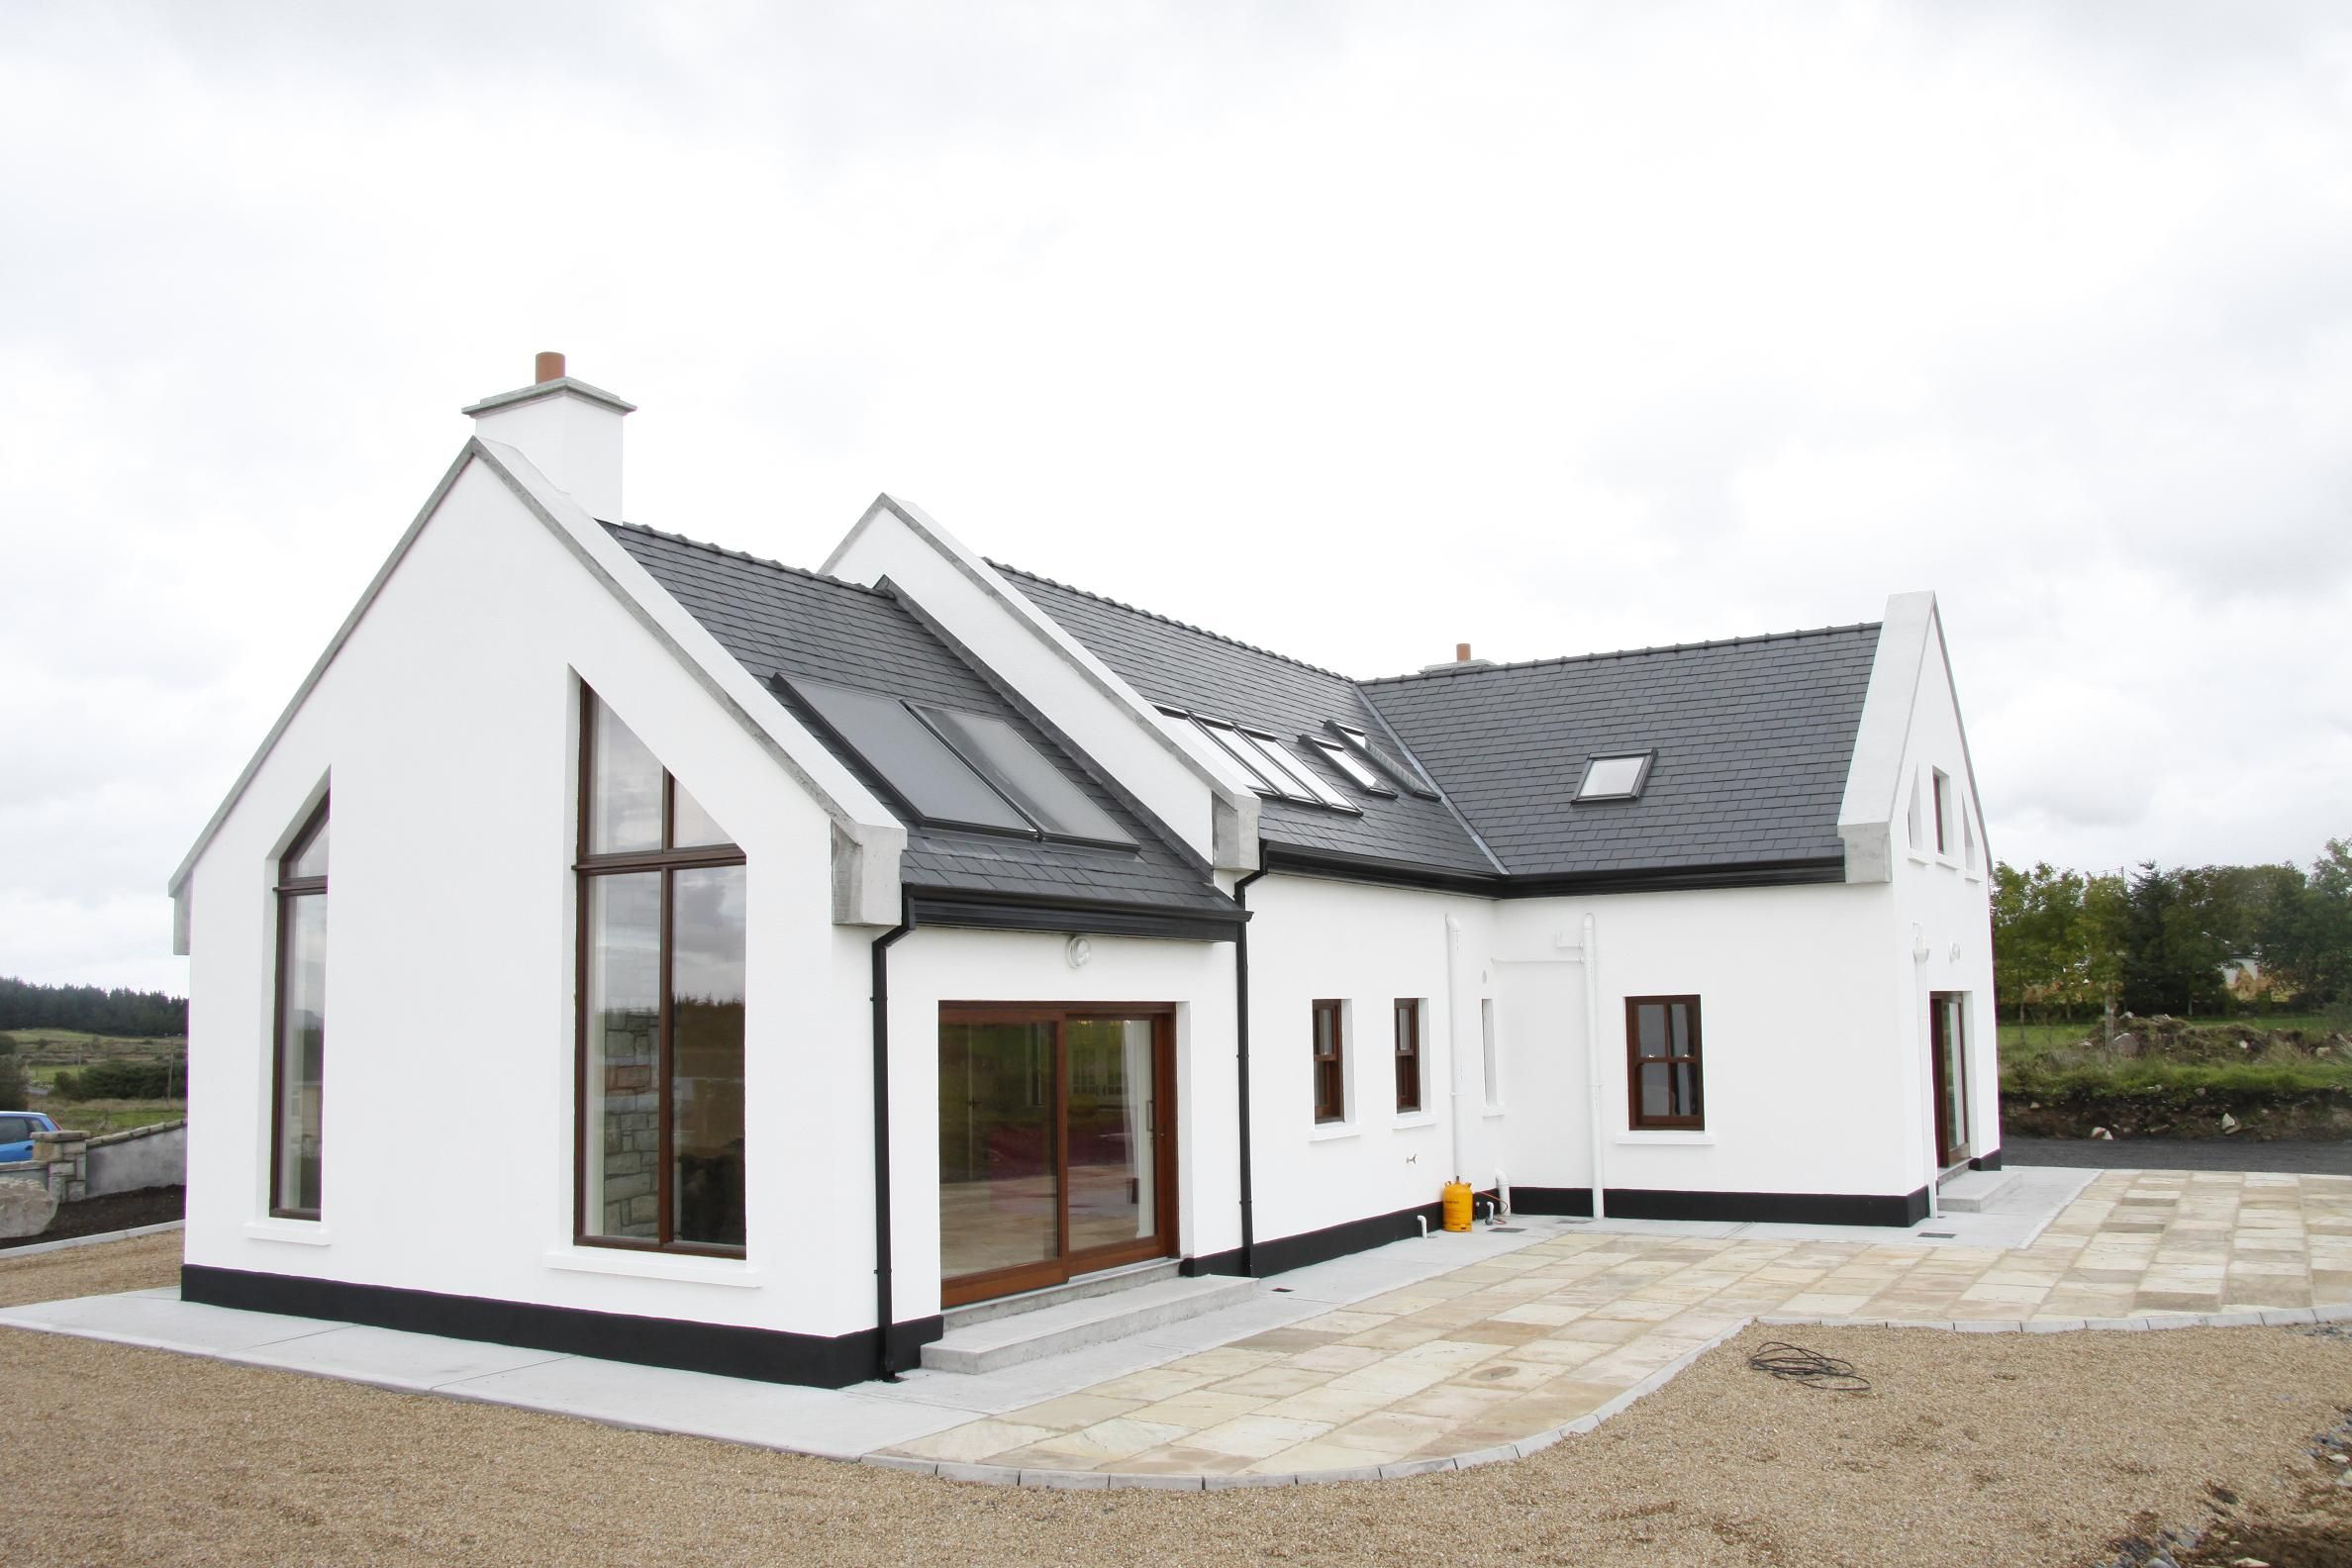 Exterior bungalow house ireland google search house for Modern cottage design plans